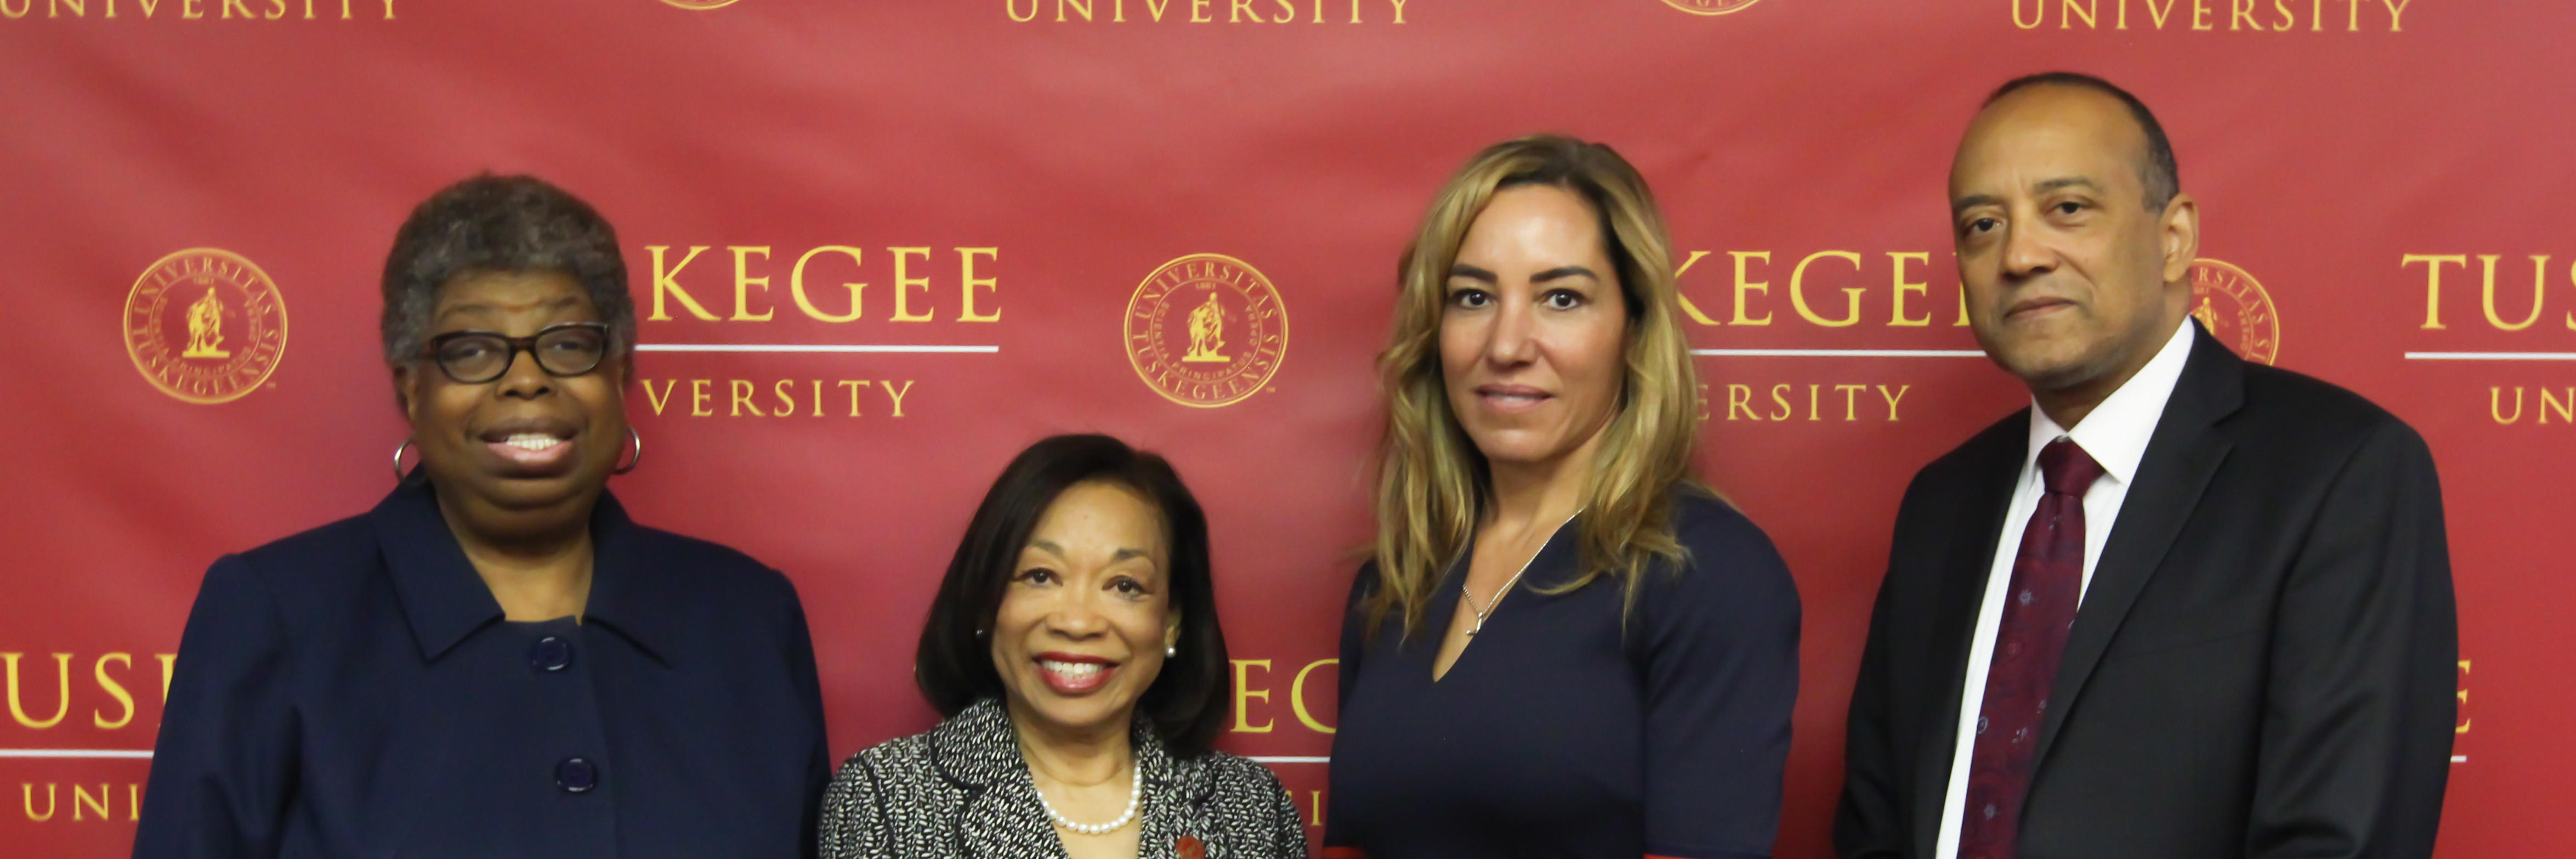 Tuskegee Partnership